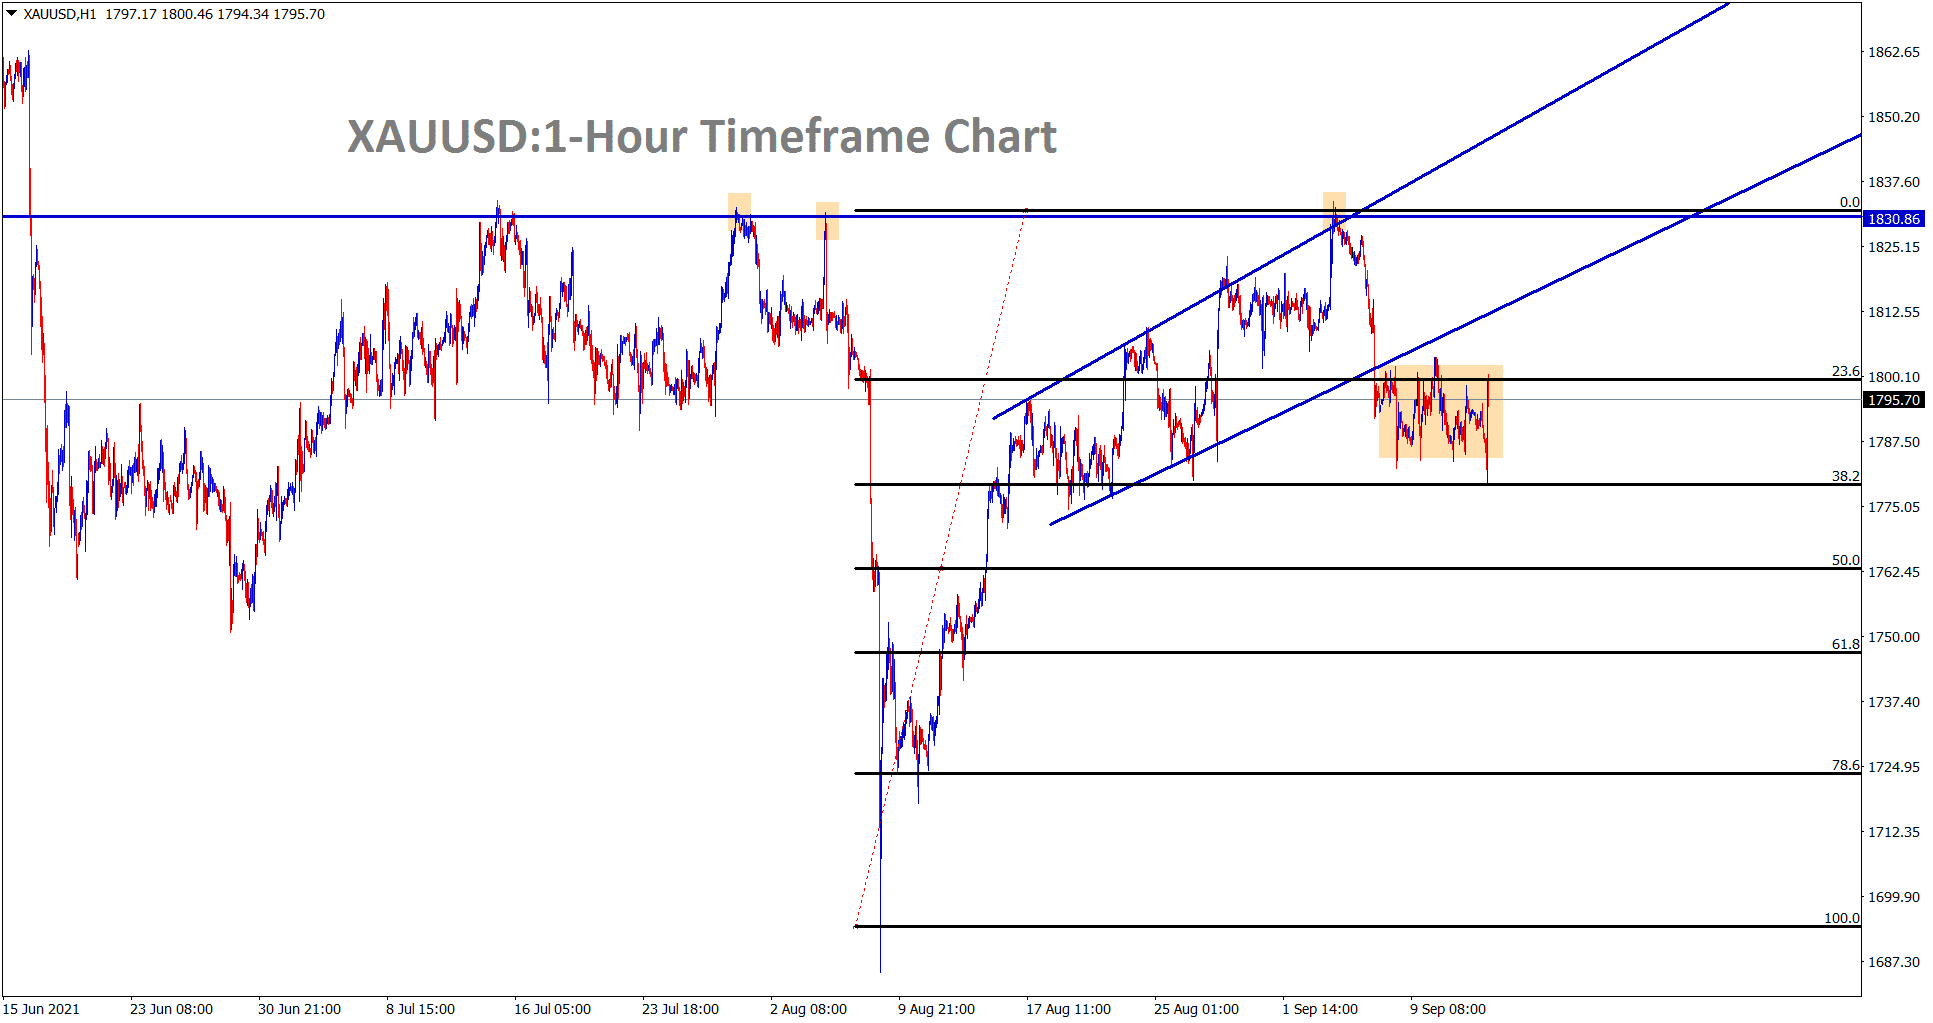 Gold is still consolidating between the support and resistance area in the hourly timeframe